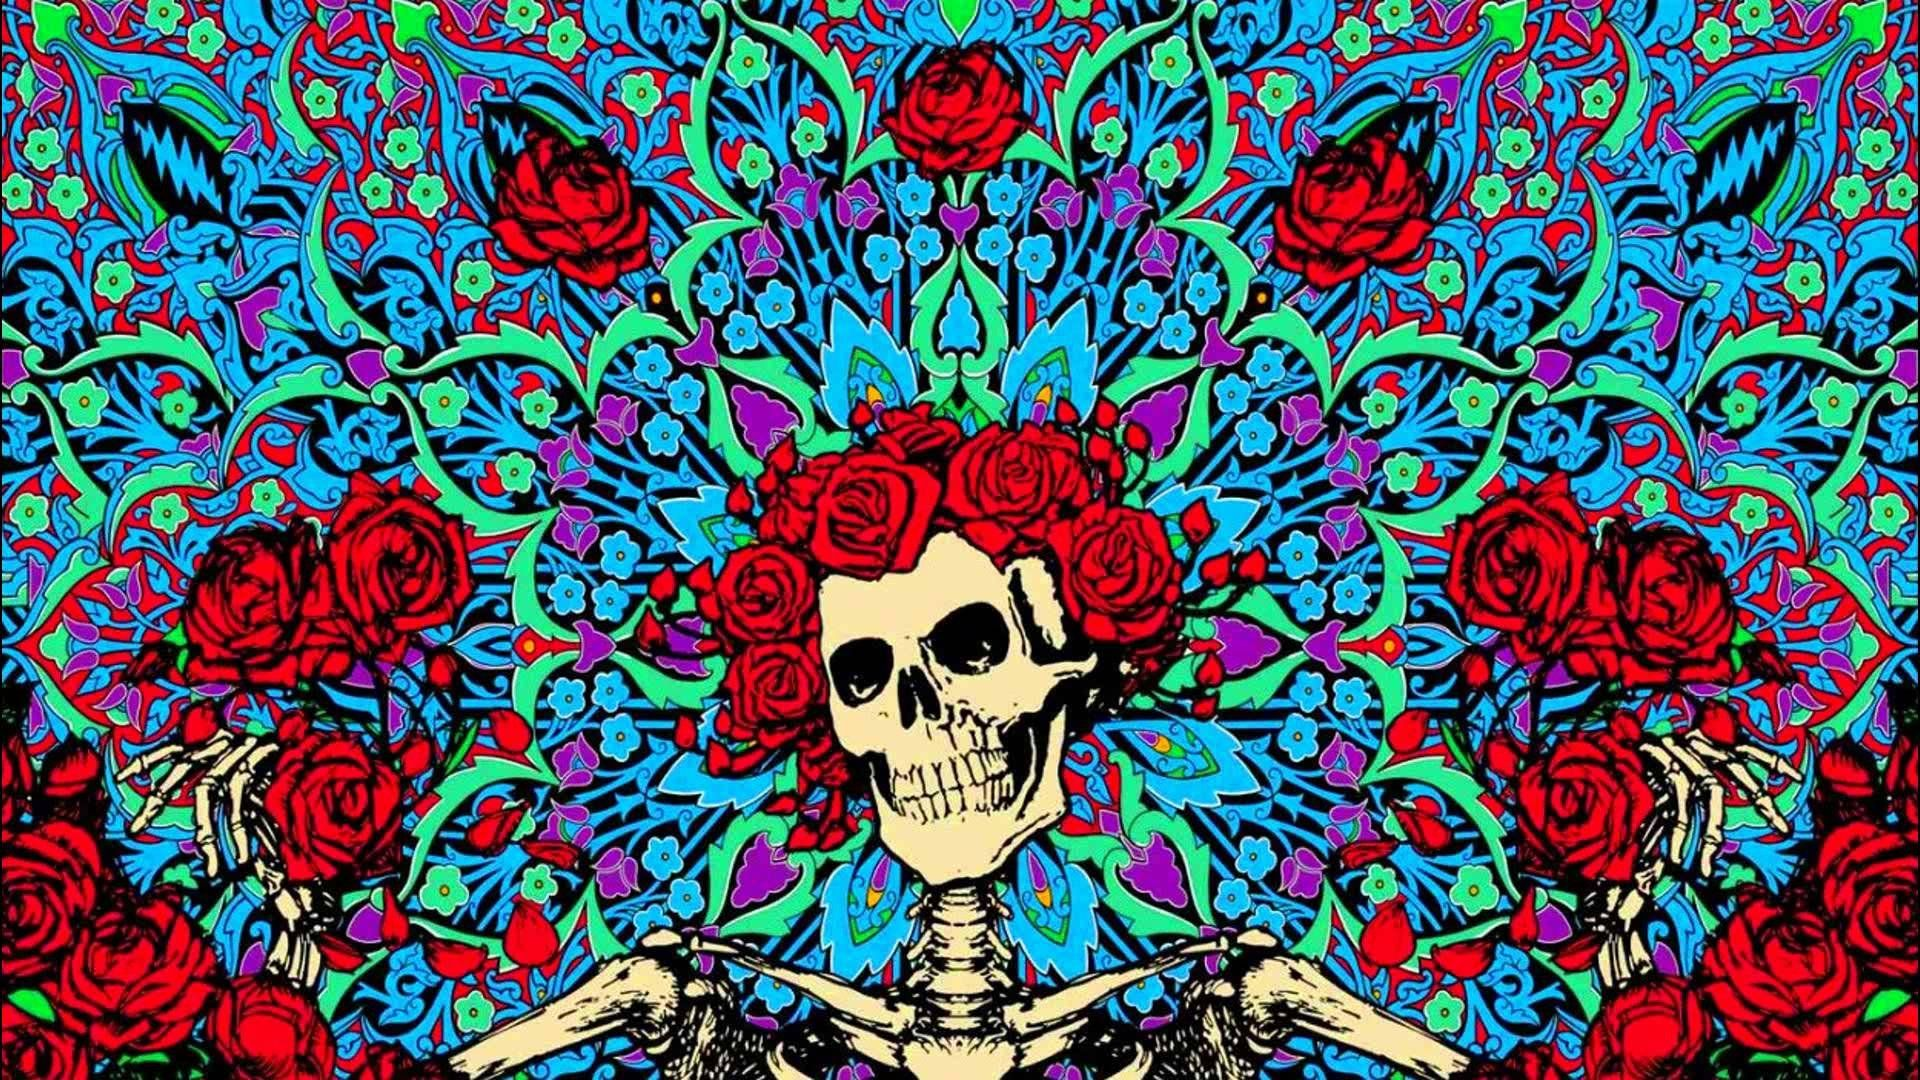 Pin By Philip On Art In 2020 Grateful Dead Wallpaper Grateful Dead Grateful Dead Songs